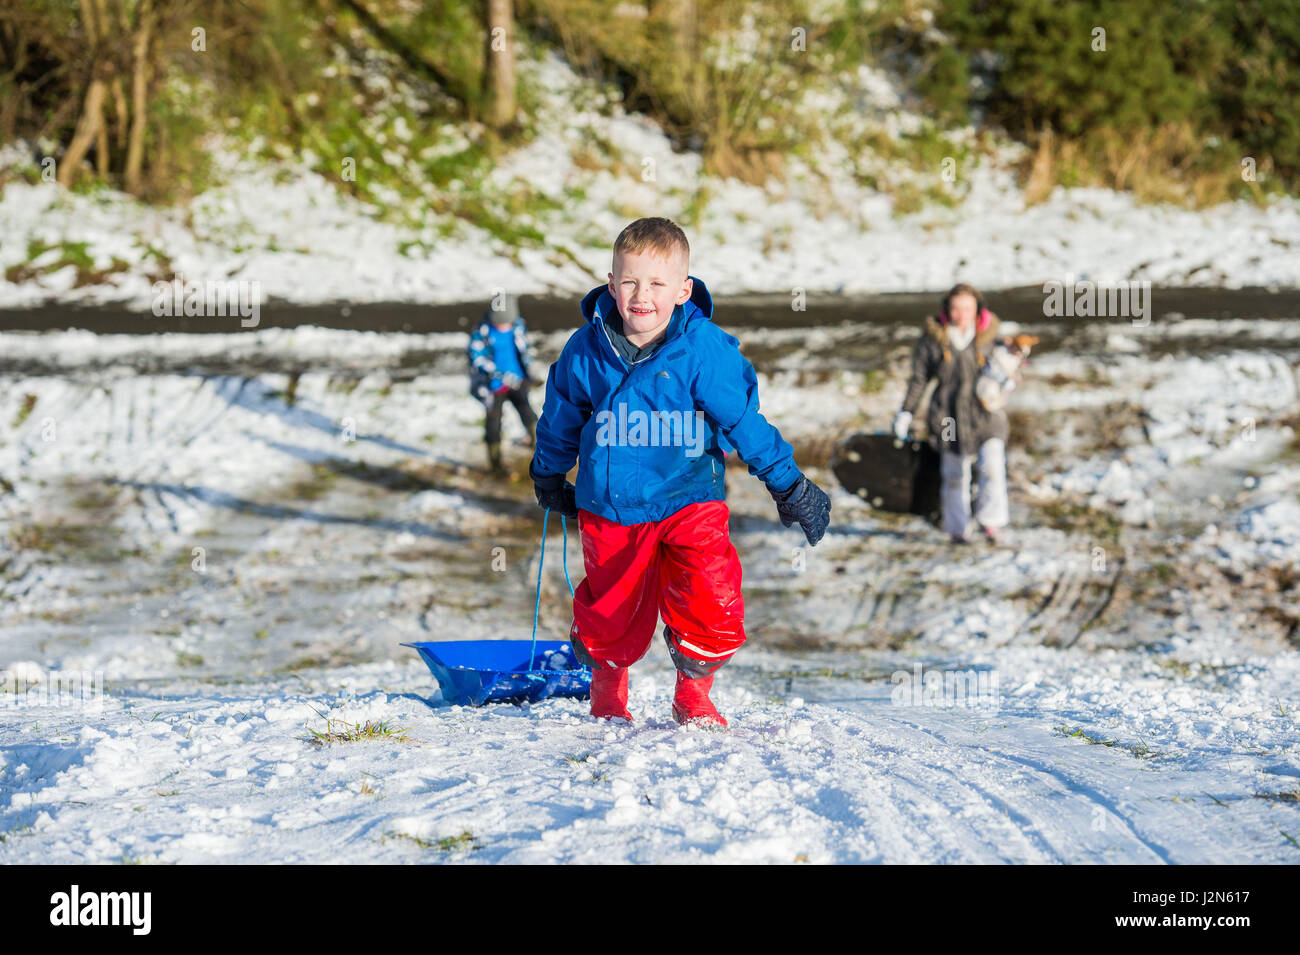 Photographer Ian Georgeson, 07921 567360 TJay Barclay (6) sledging in Penicuik - Stock Image